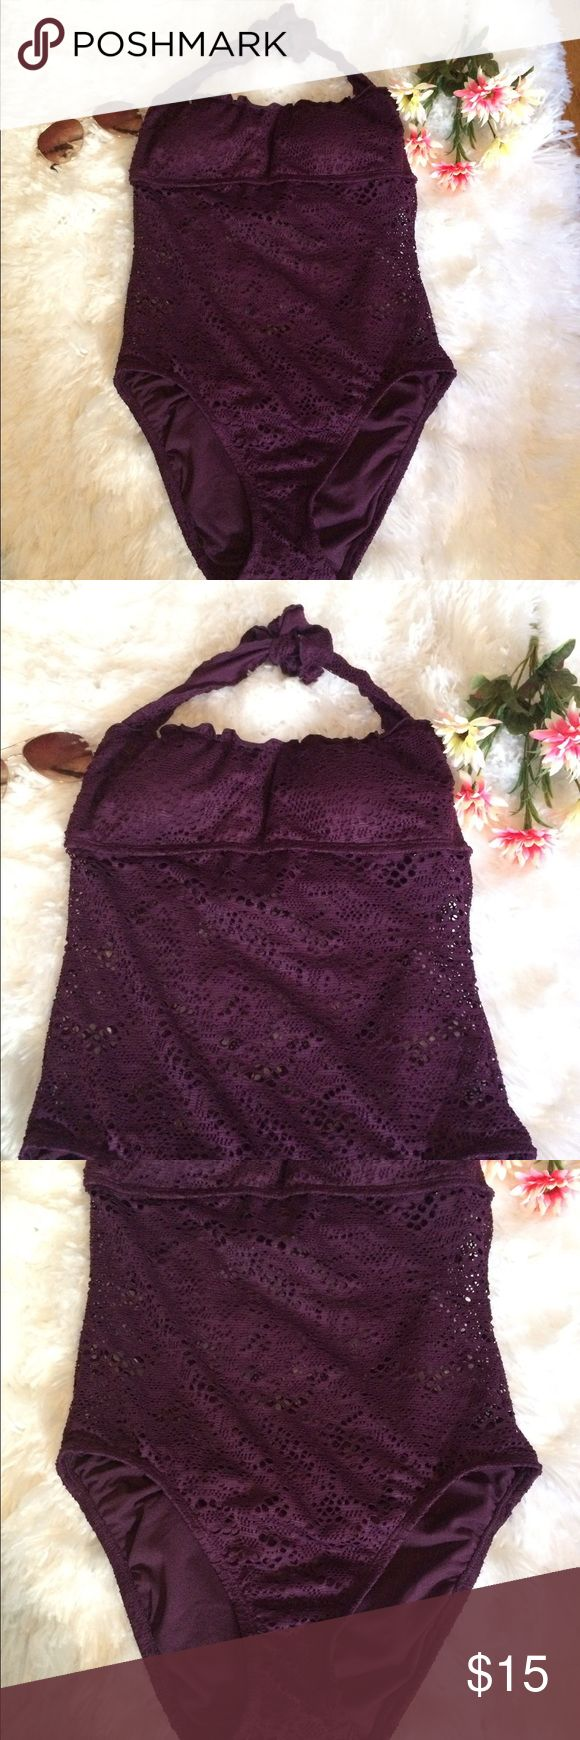 🌸NWT Purple One Piece Crochet Bathing Suit🌸 🛍New with tags bathing suit. The top has slight padding. 🛍 Mossimo Supply Co. Swim One Pieces